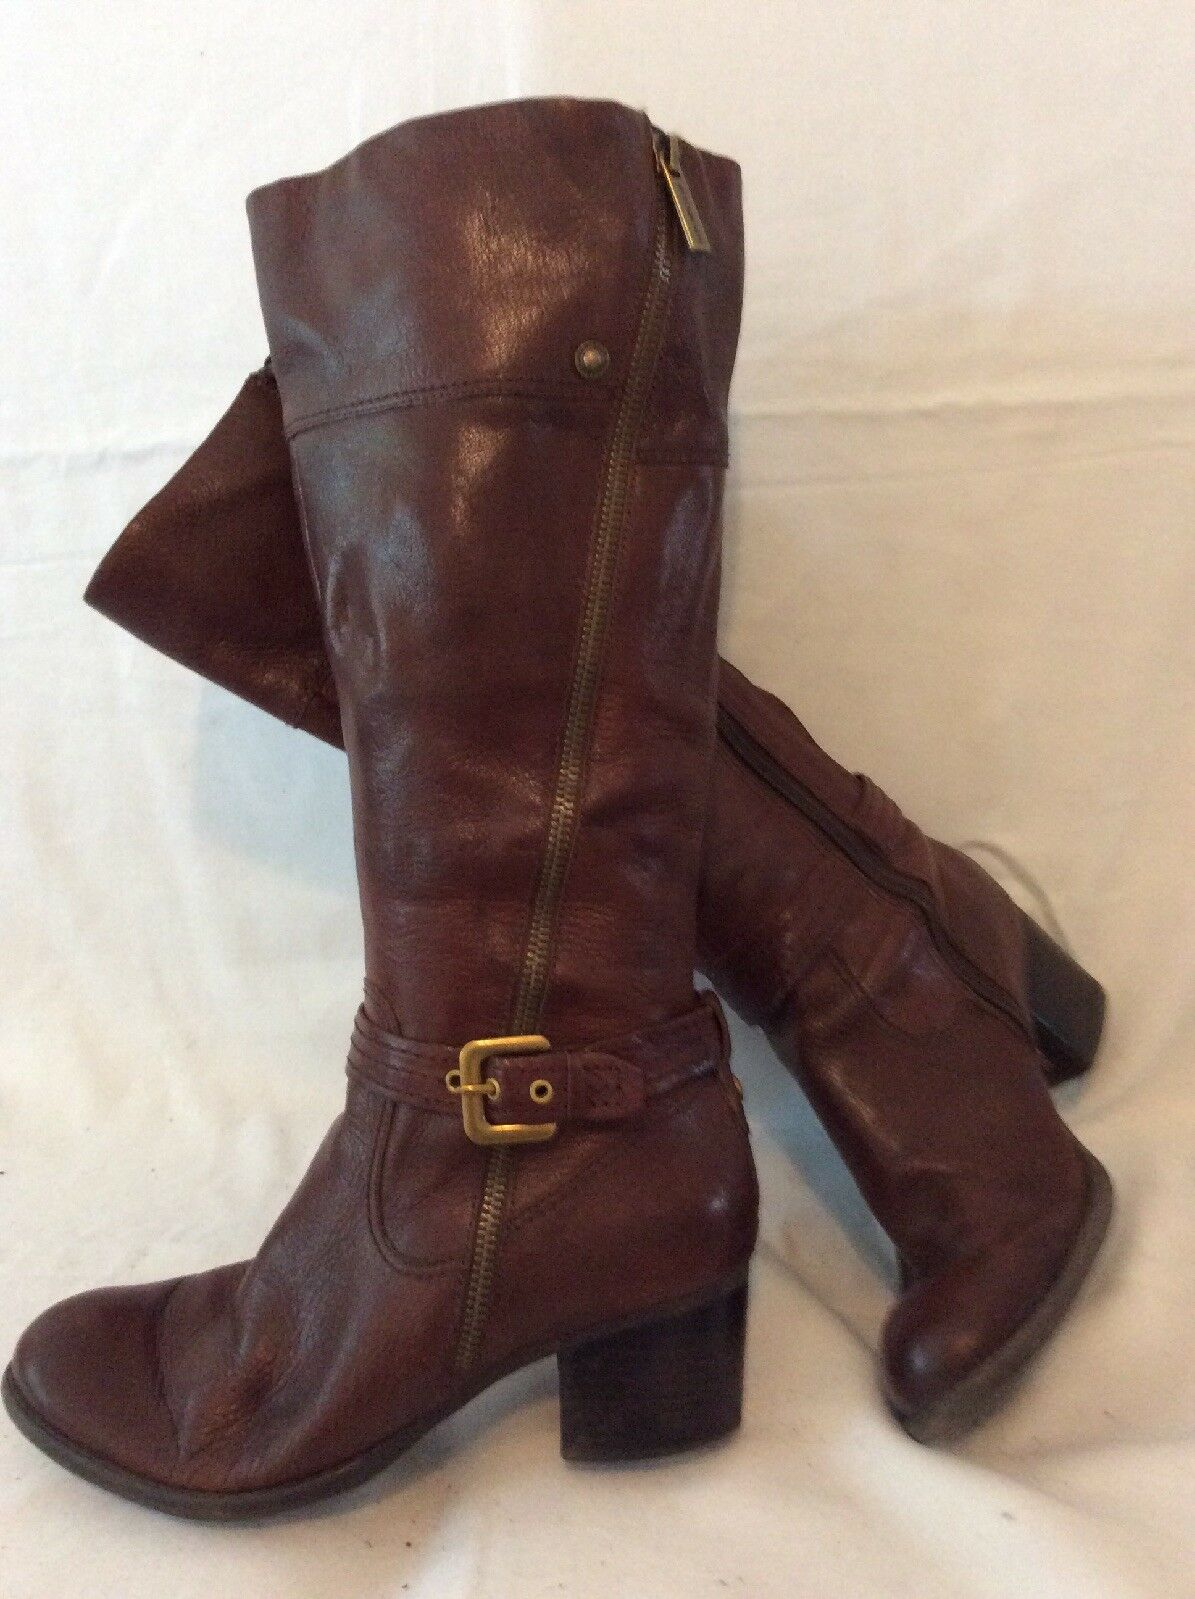 Autograph Brown Knee High Leather Boots Size 5.5